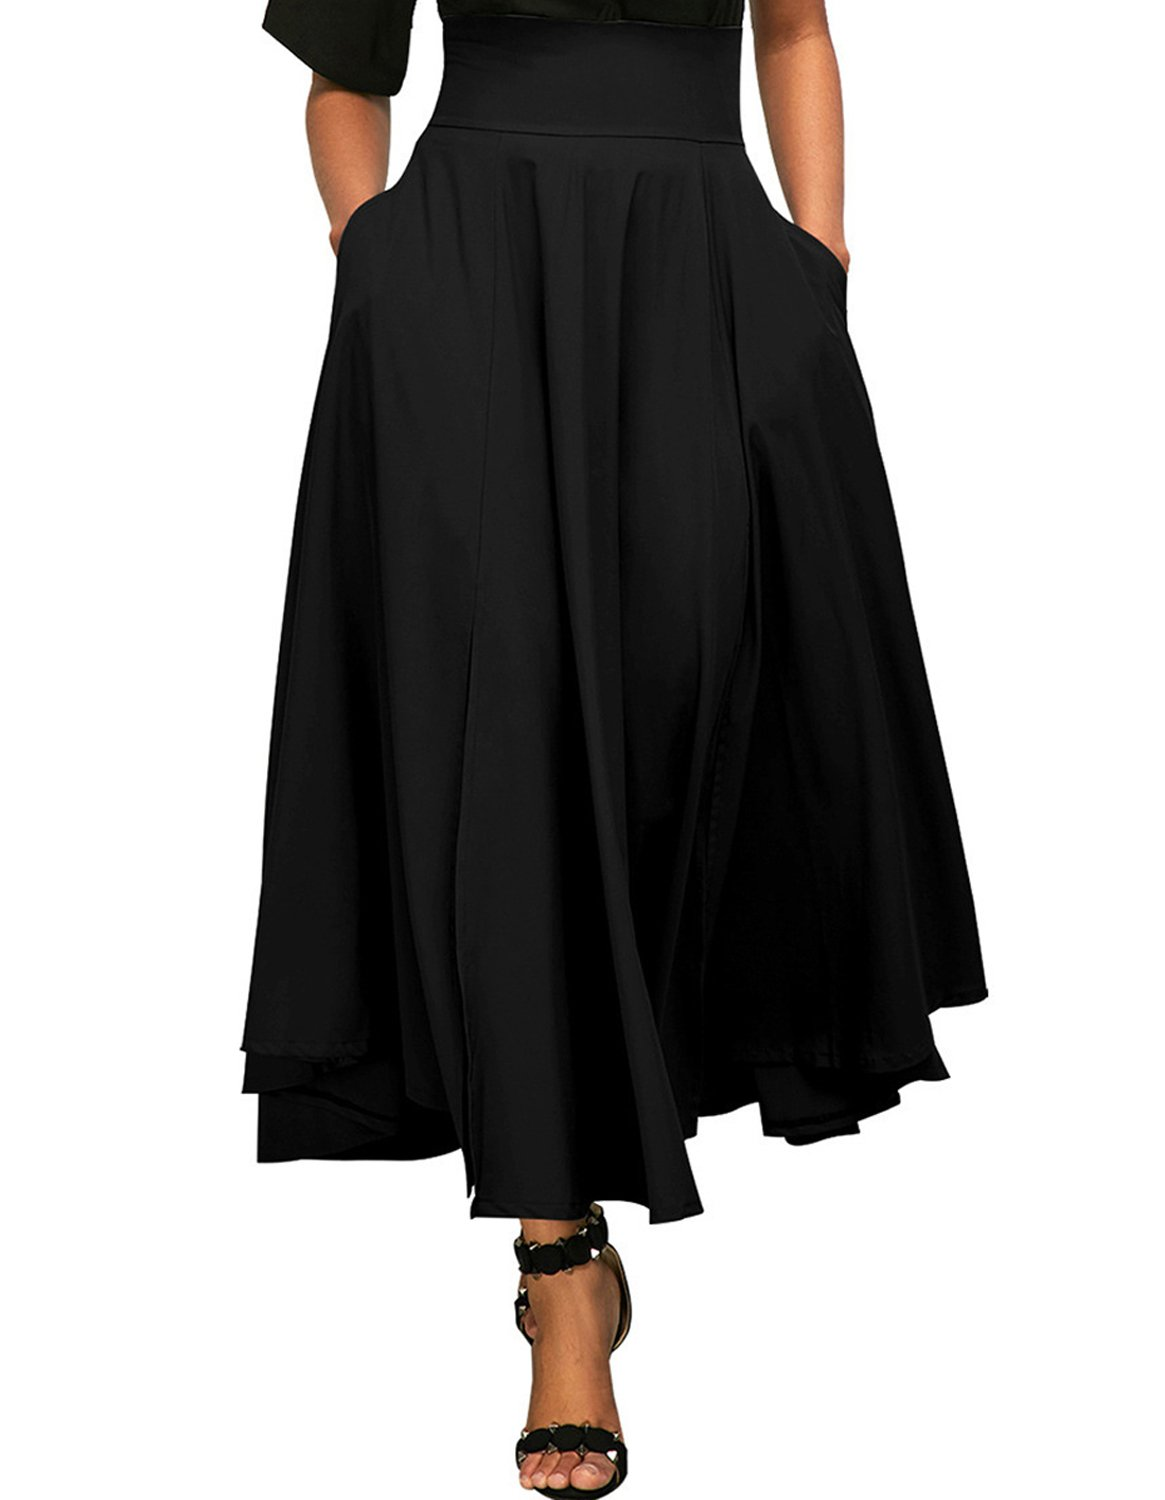 Kimikal Gothic Steampunk Long Sateen Corset Skirt 3